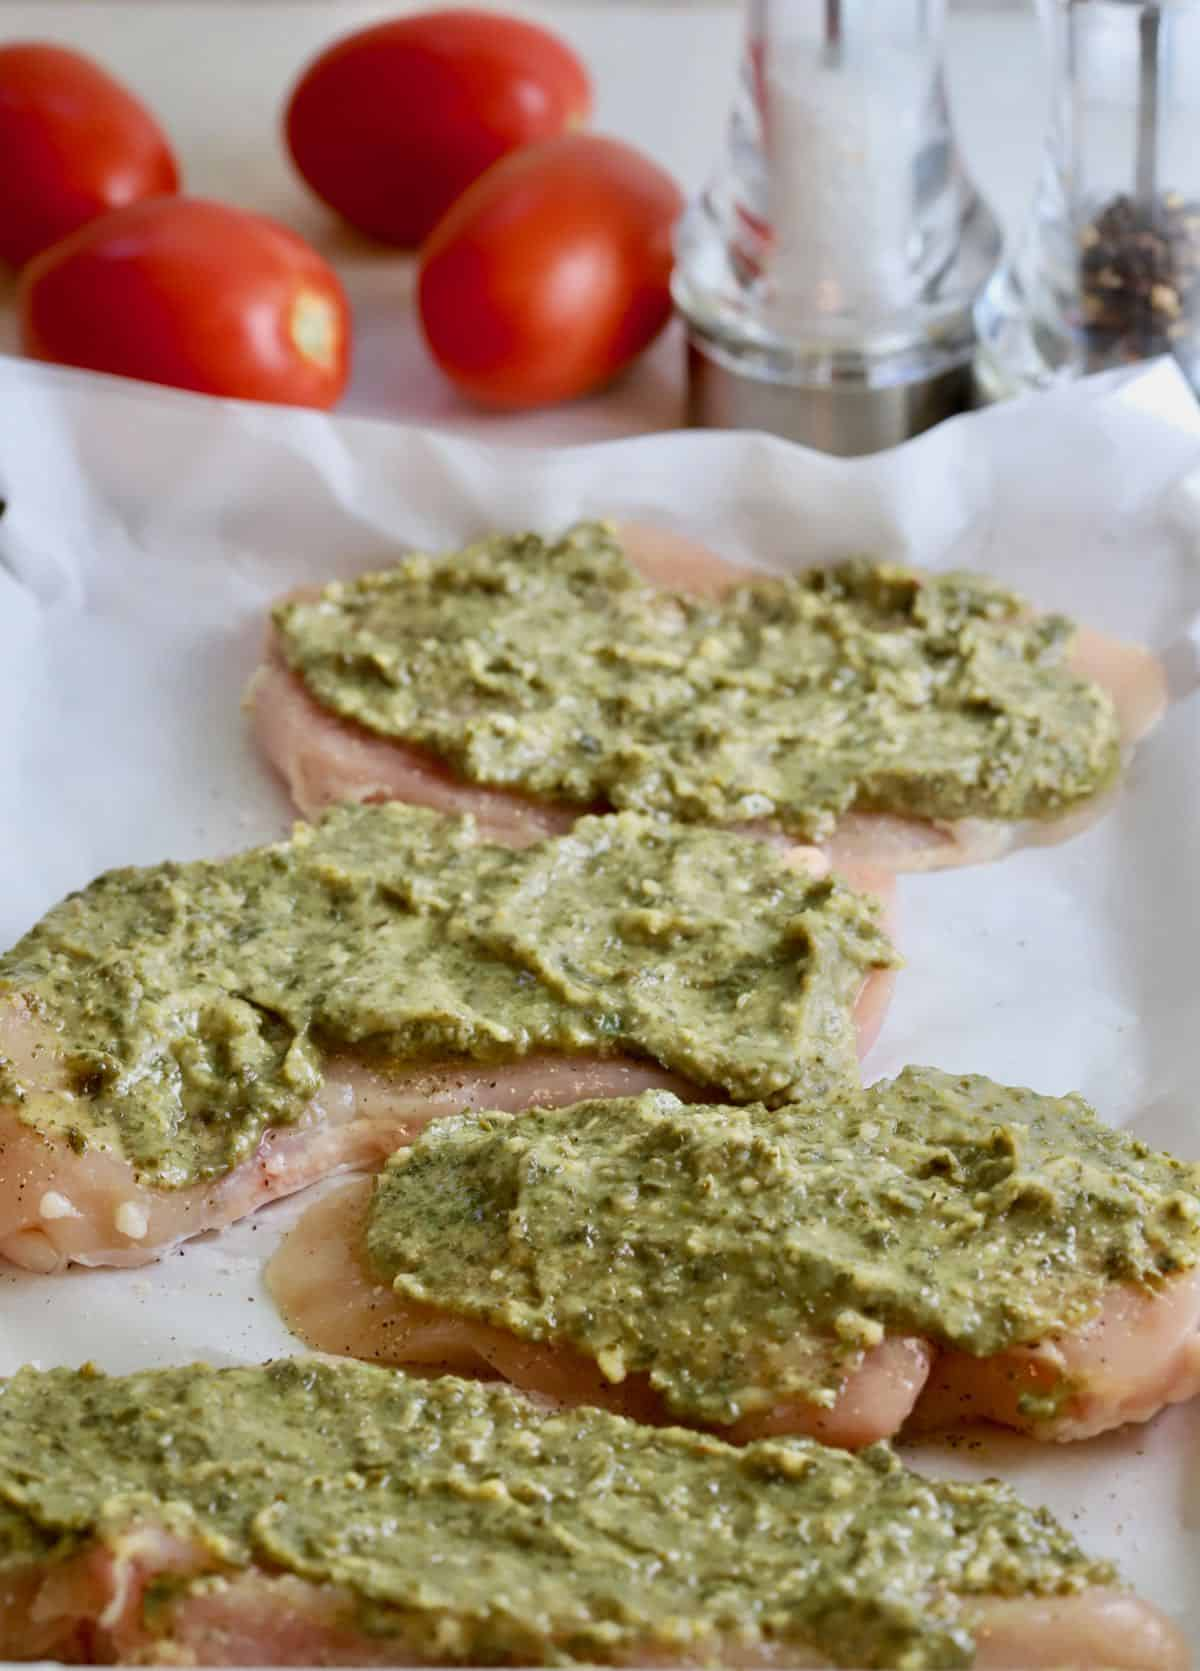 Basil pesto covering chicken breasts.